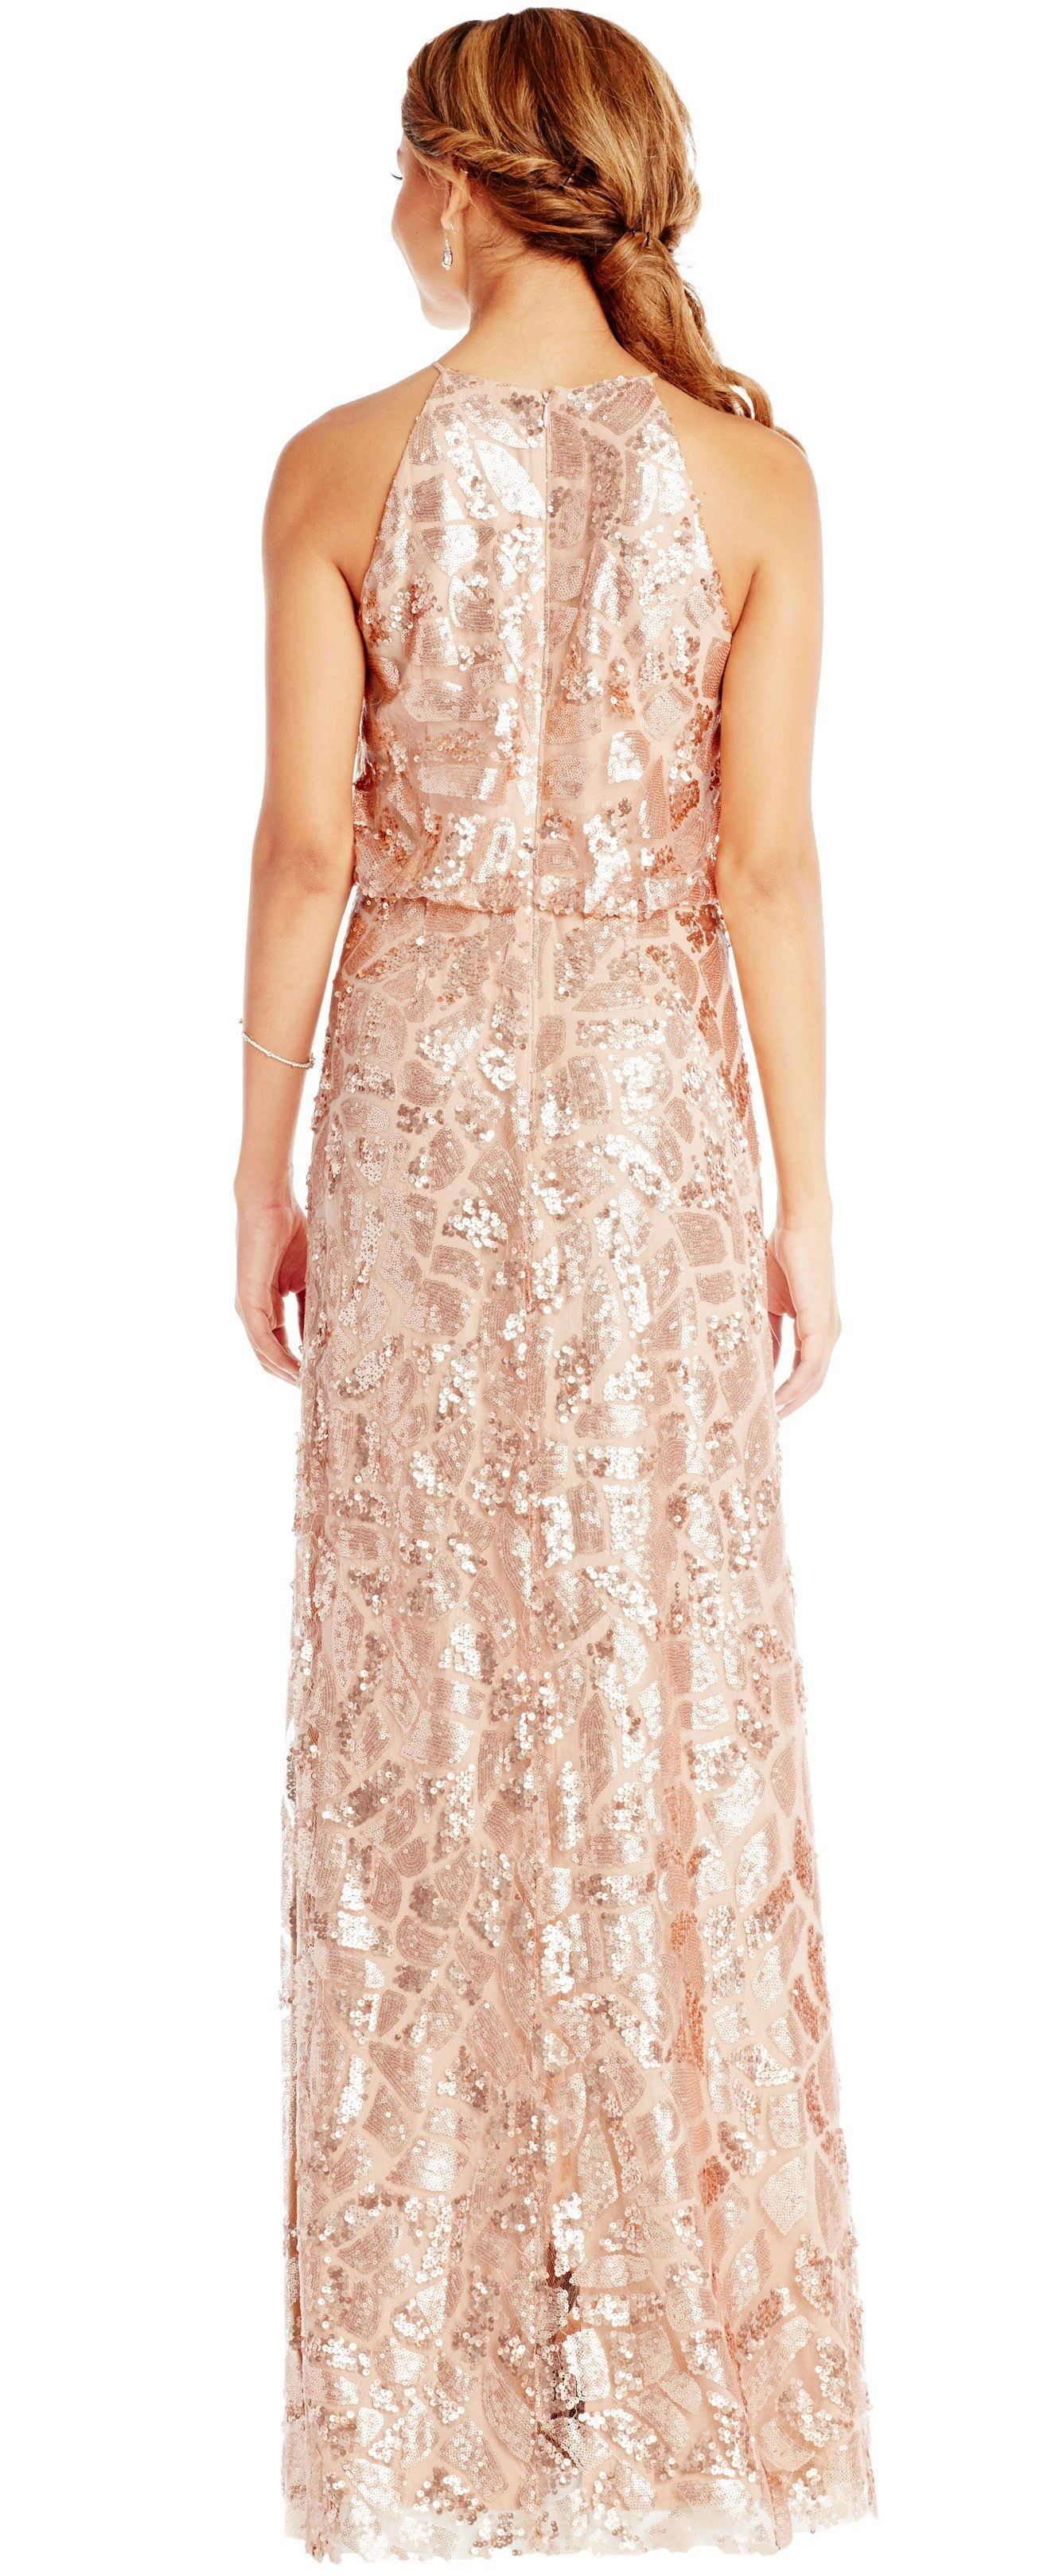 Chic sleeveless high neck sequined convertible bridesmaid